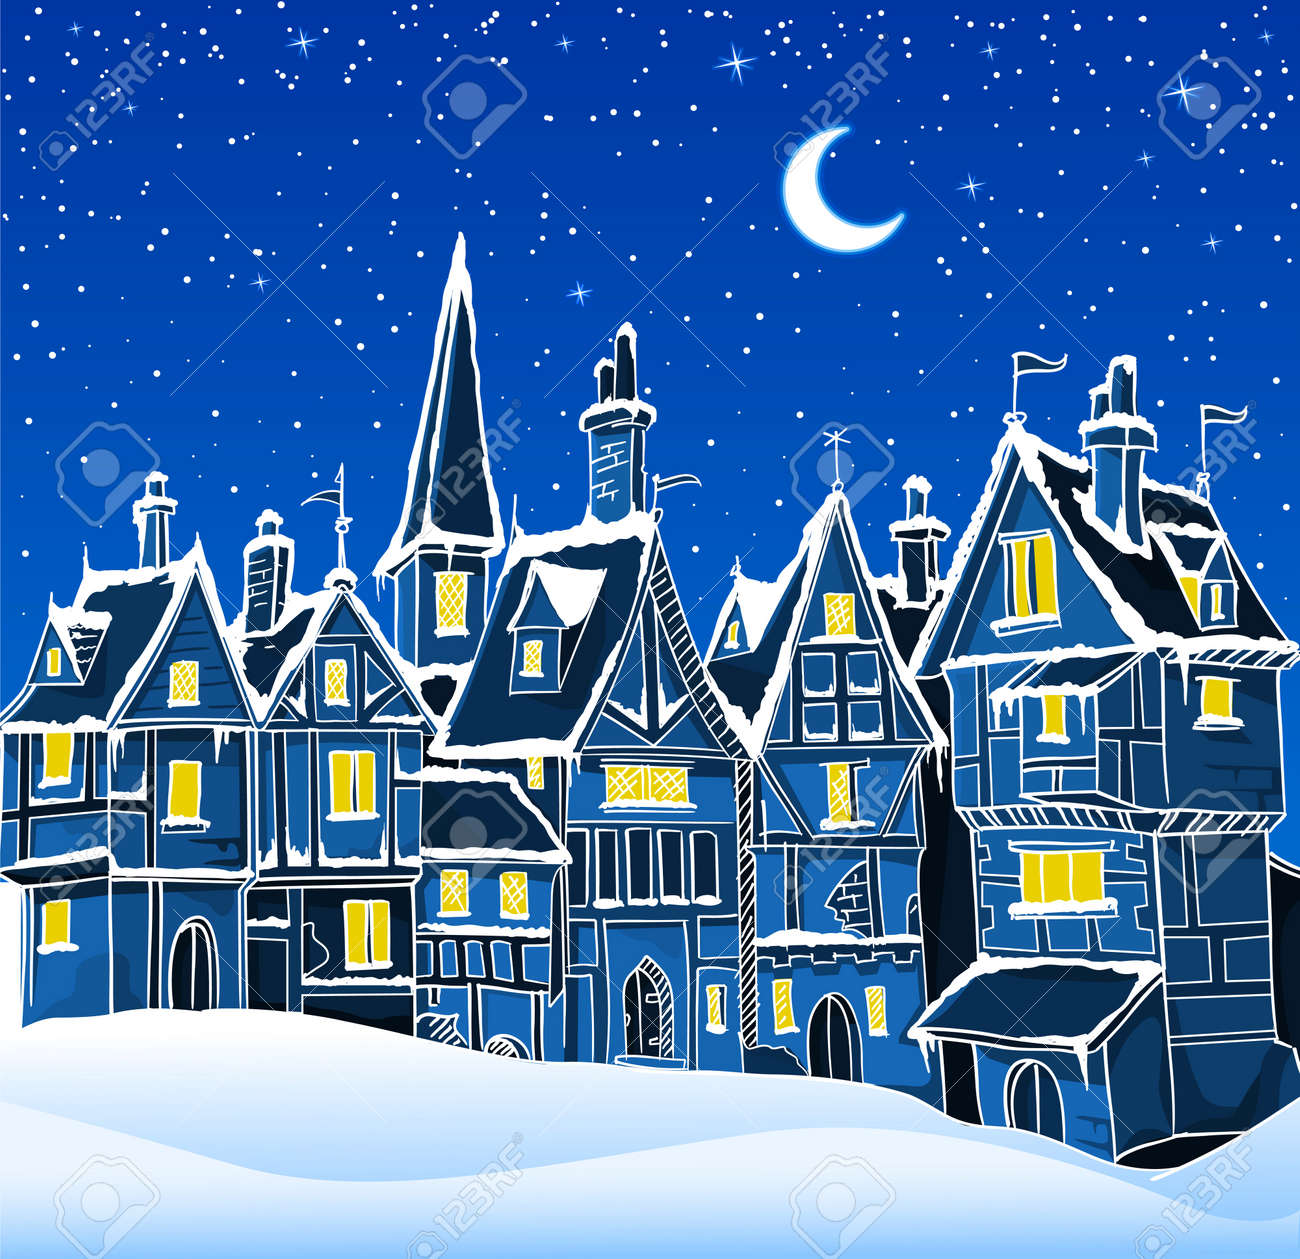 vector illustration of night winter town in snow. Can be used as a background for cristmas greeting card Stock Vector - 4010615